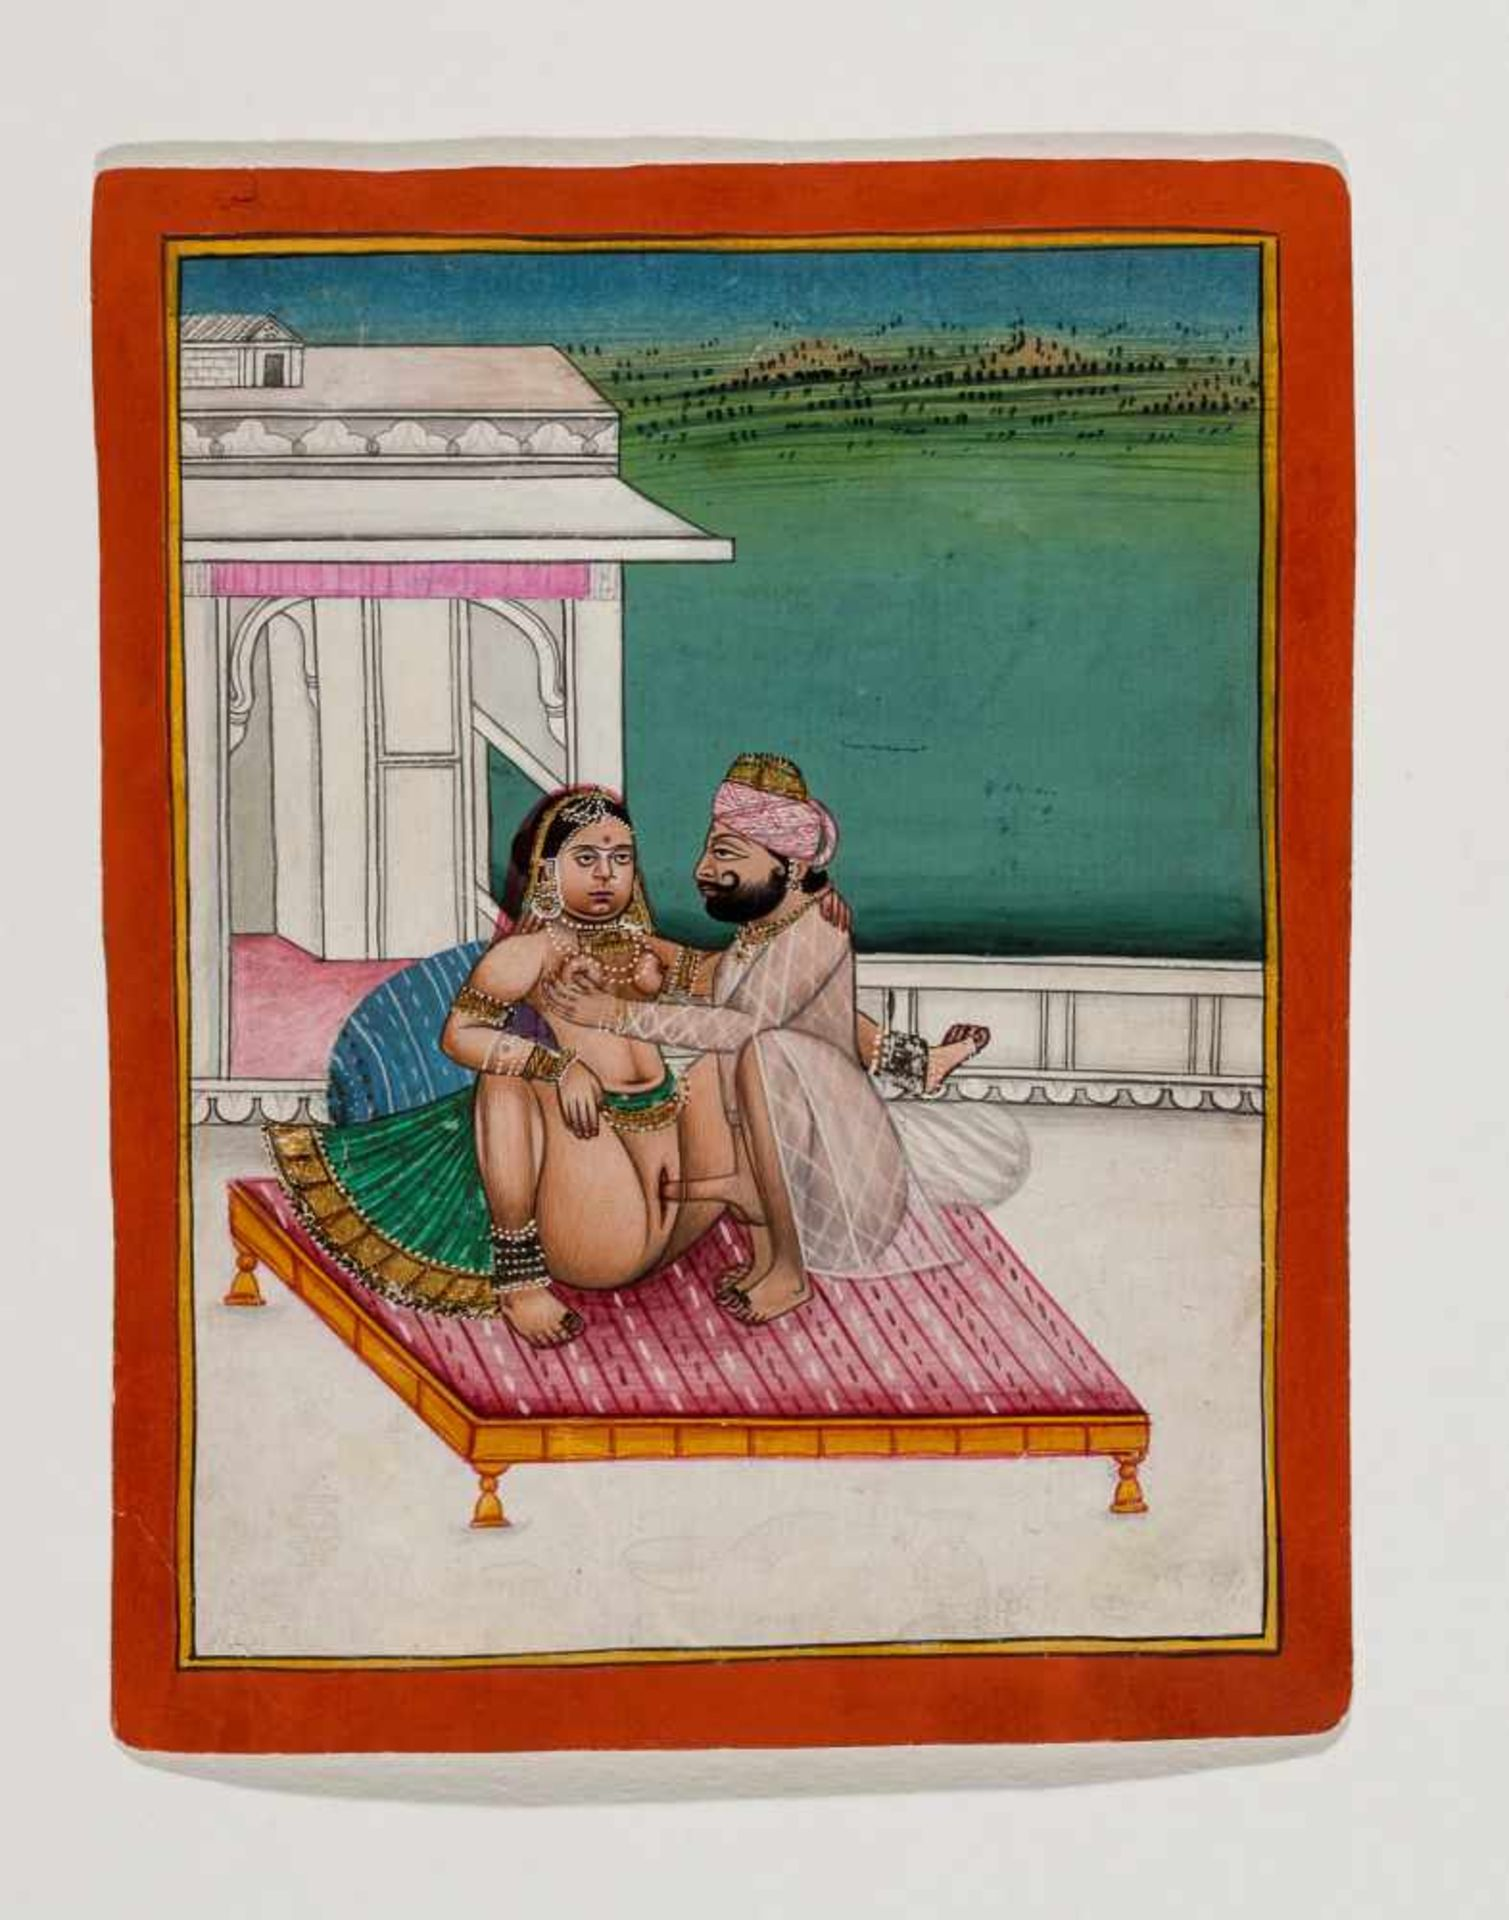 AN EROTIC MINIATURE PAINTING - INDIA, 19TH – EARLY 20th CENTURYGouache and gold paint on paper